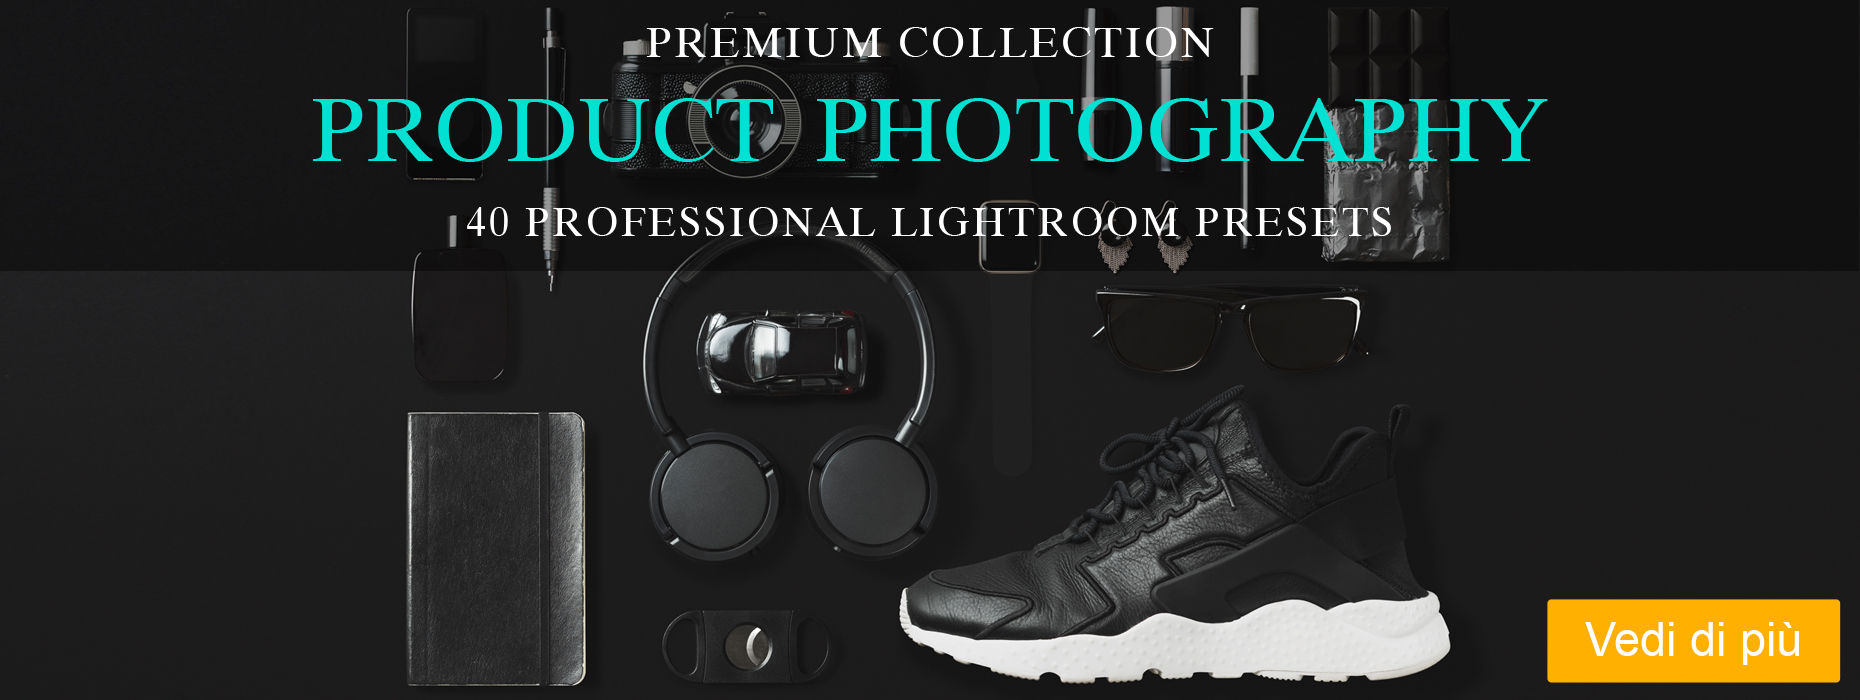 lightroom cibo gratis product collection